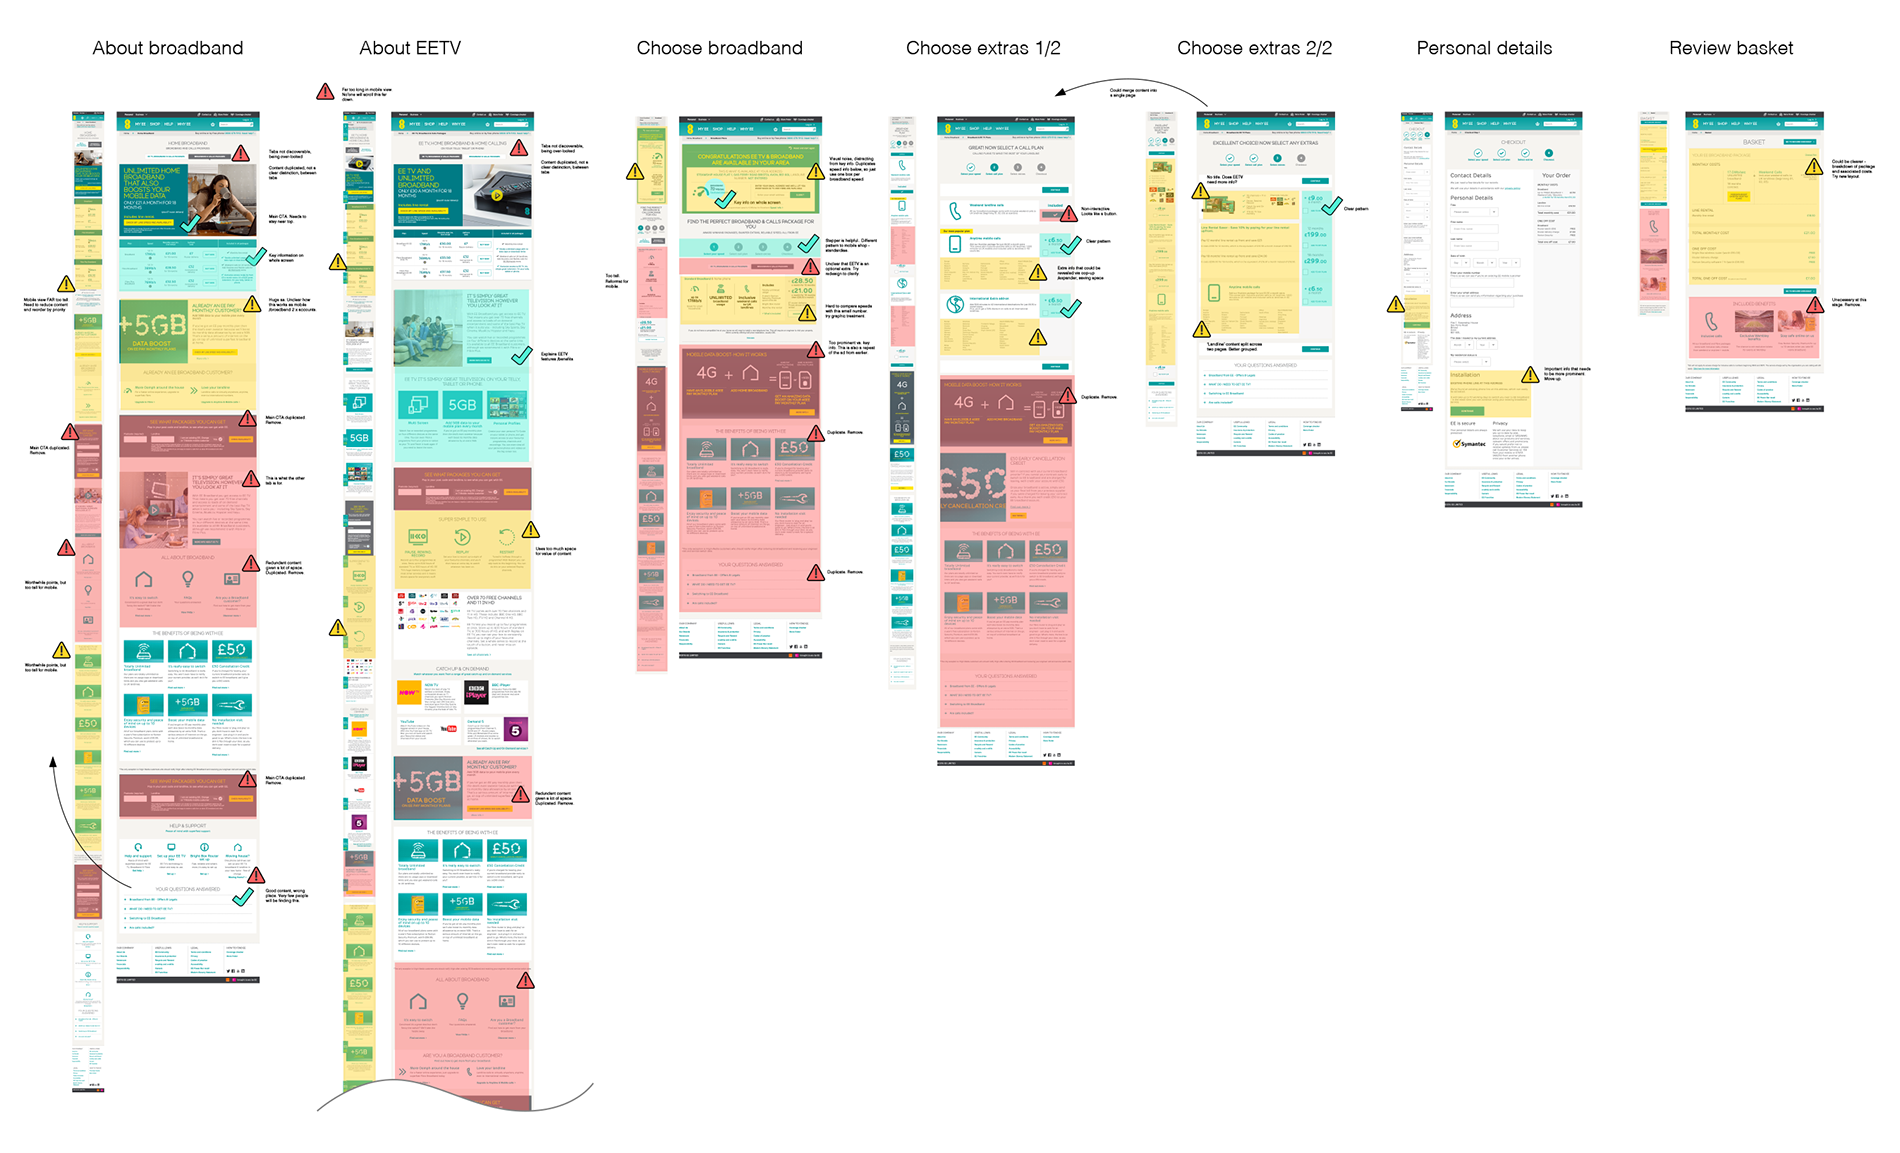 UX appraisal of existing site, considering mobile and desktop layouts. Focus was on improving usability and making EE's broadband offering clear. Many of my suggestions revolved around reprioritising content, removing clutter and finding better groupings and labels for information